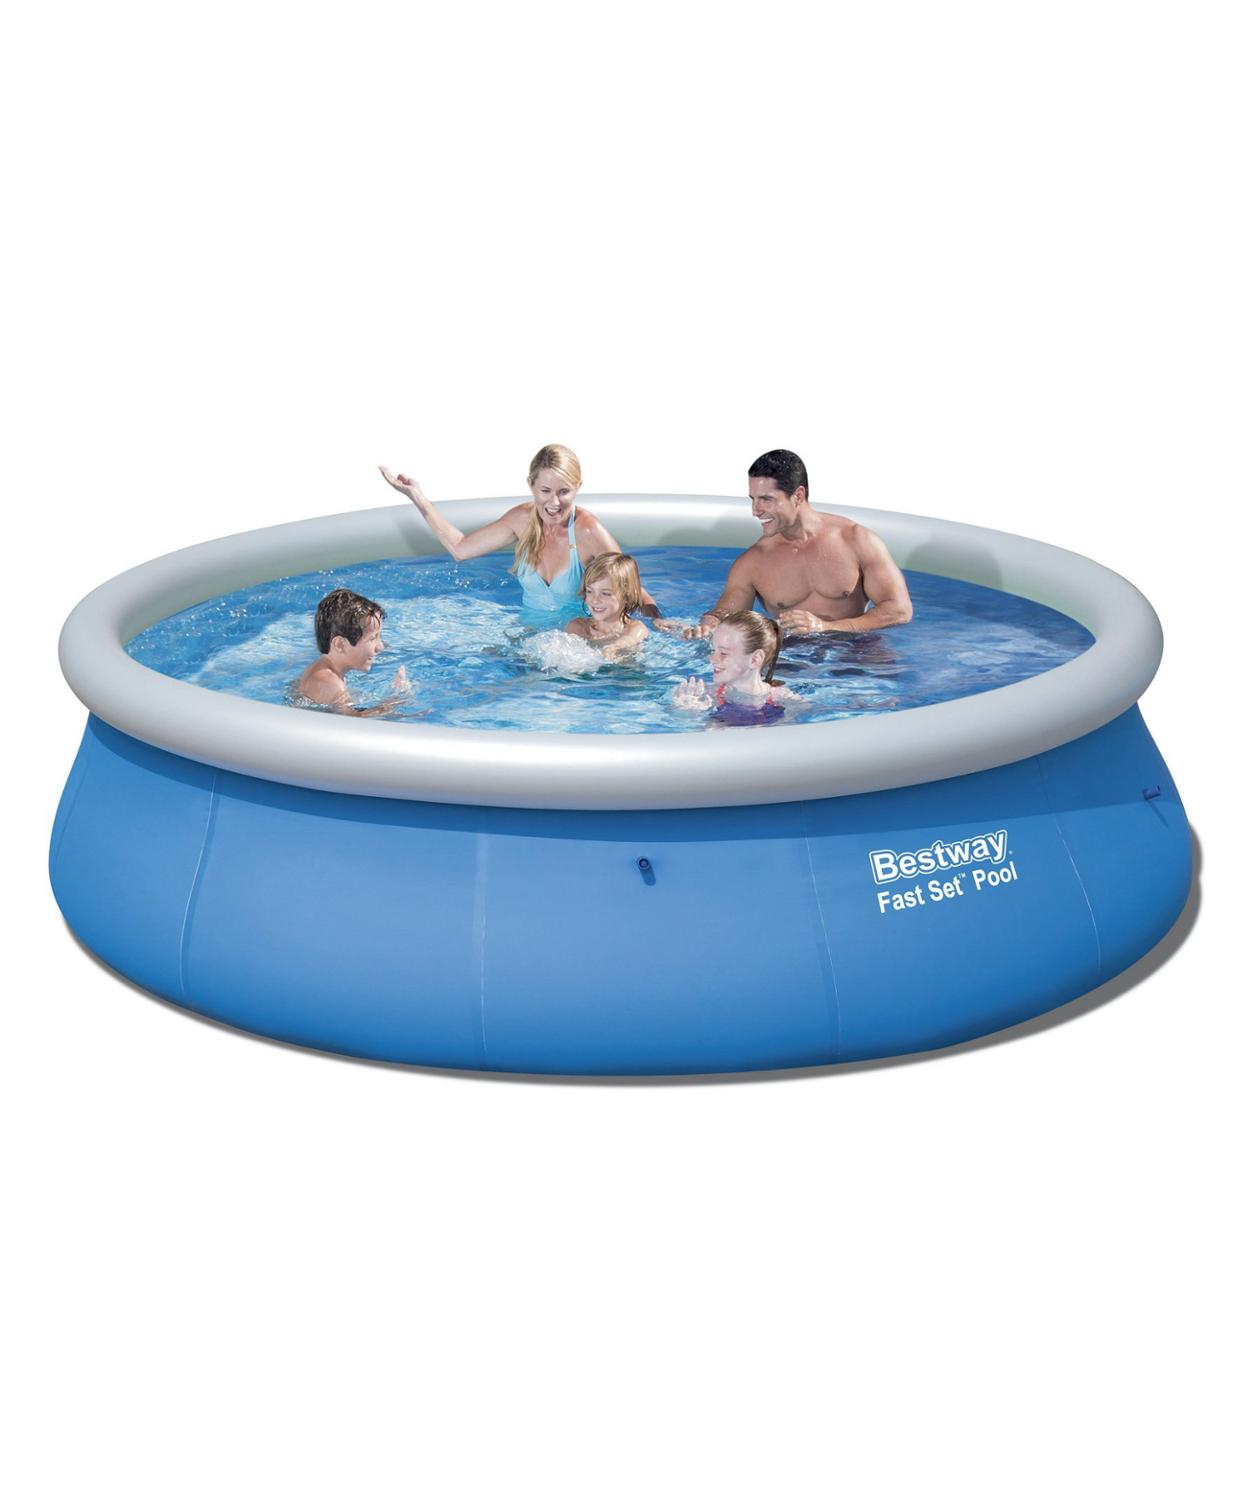 Round Pool Inflatable водораспорный With Inflatable Ring Broadside For Garden Summer Fast Set 457 х91 Cm, 10179 L, Bestway, Item No. 57310